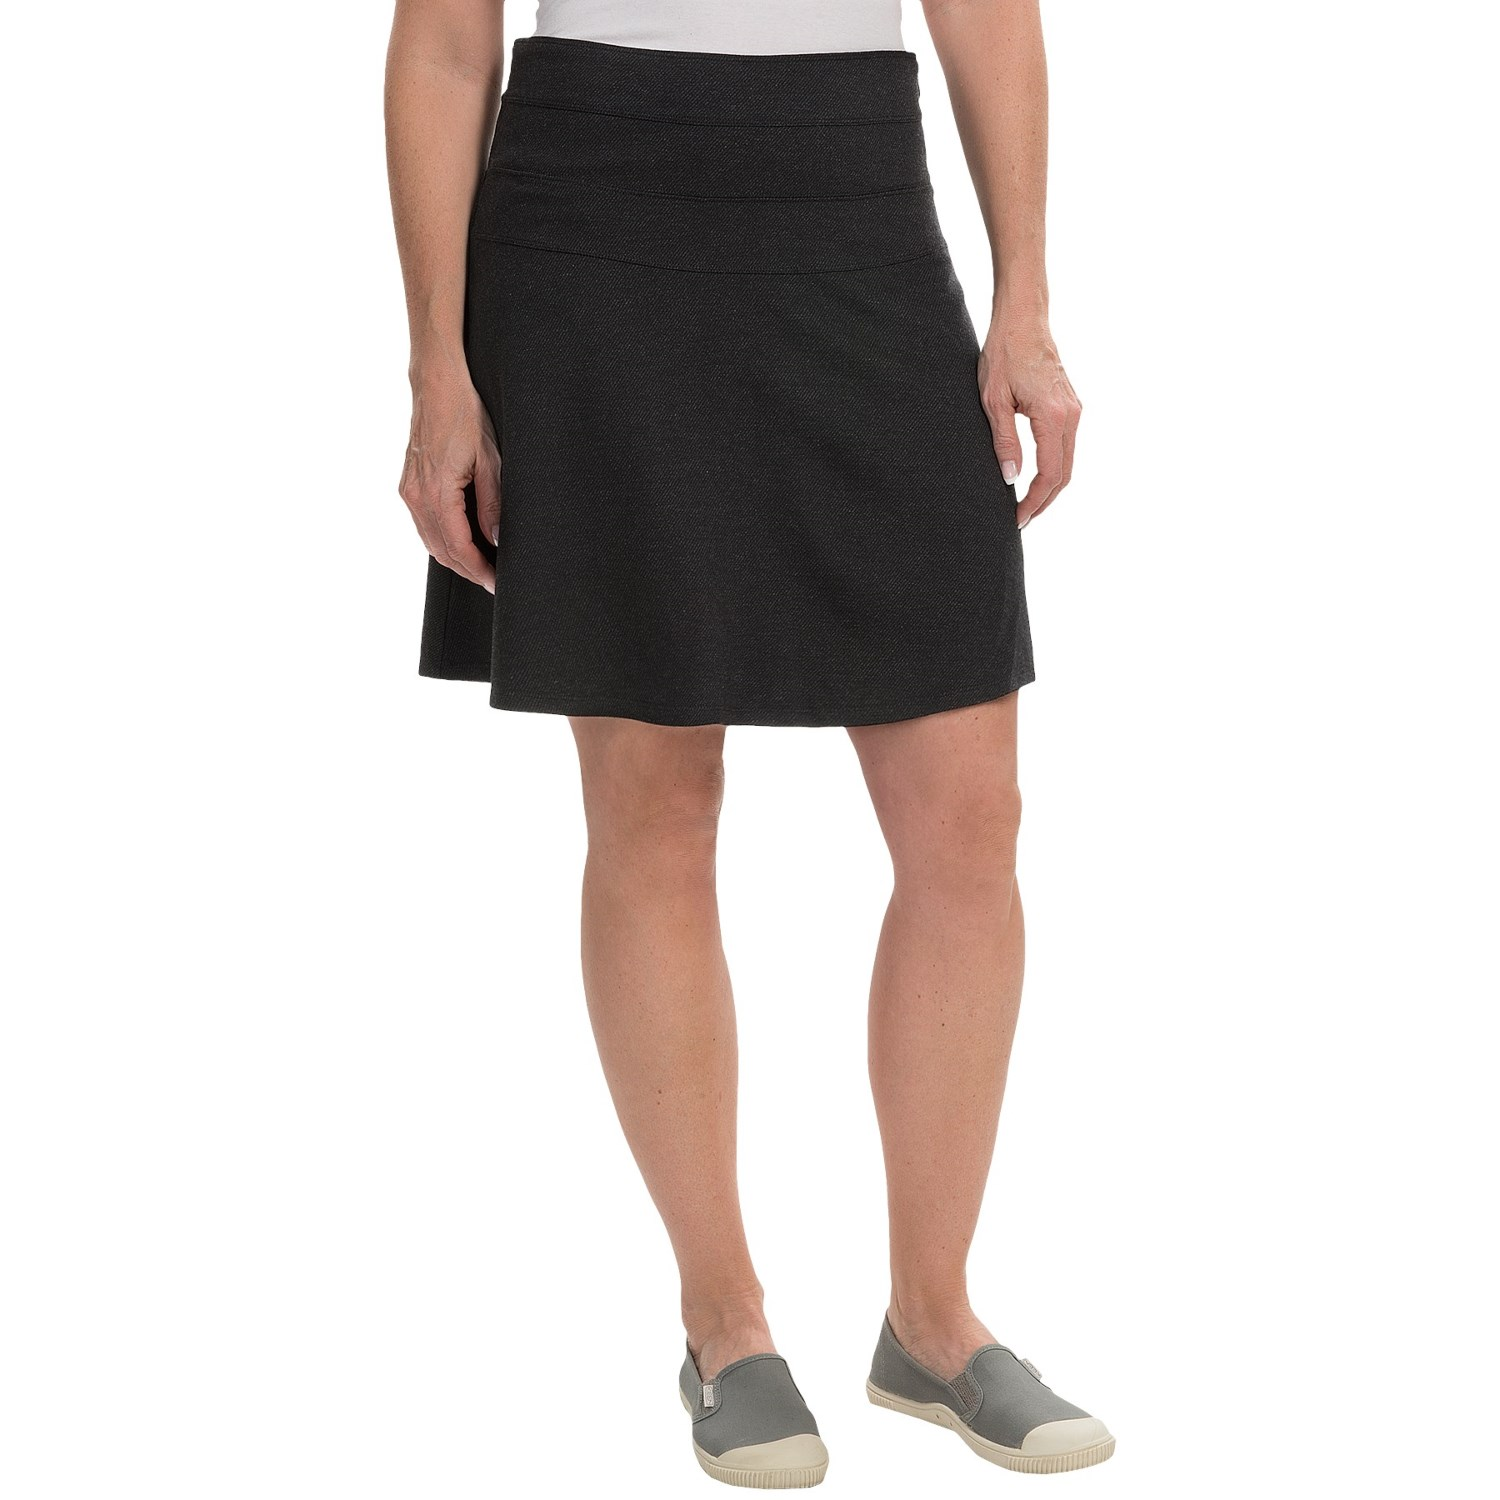 knit twill skirt for save 78